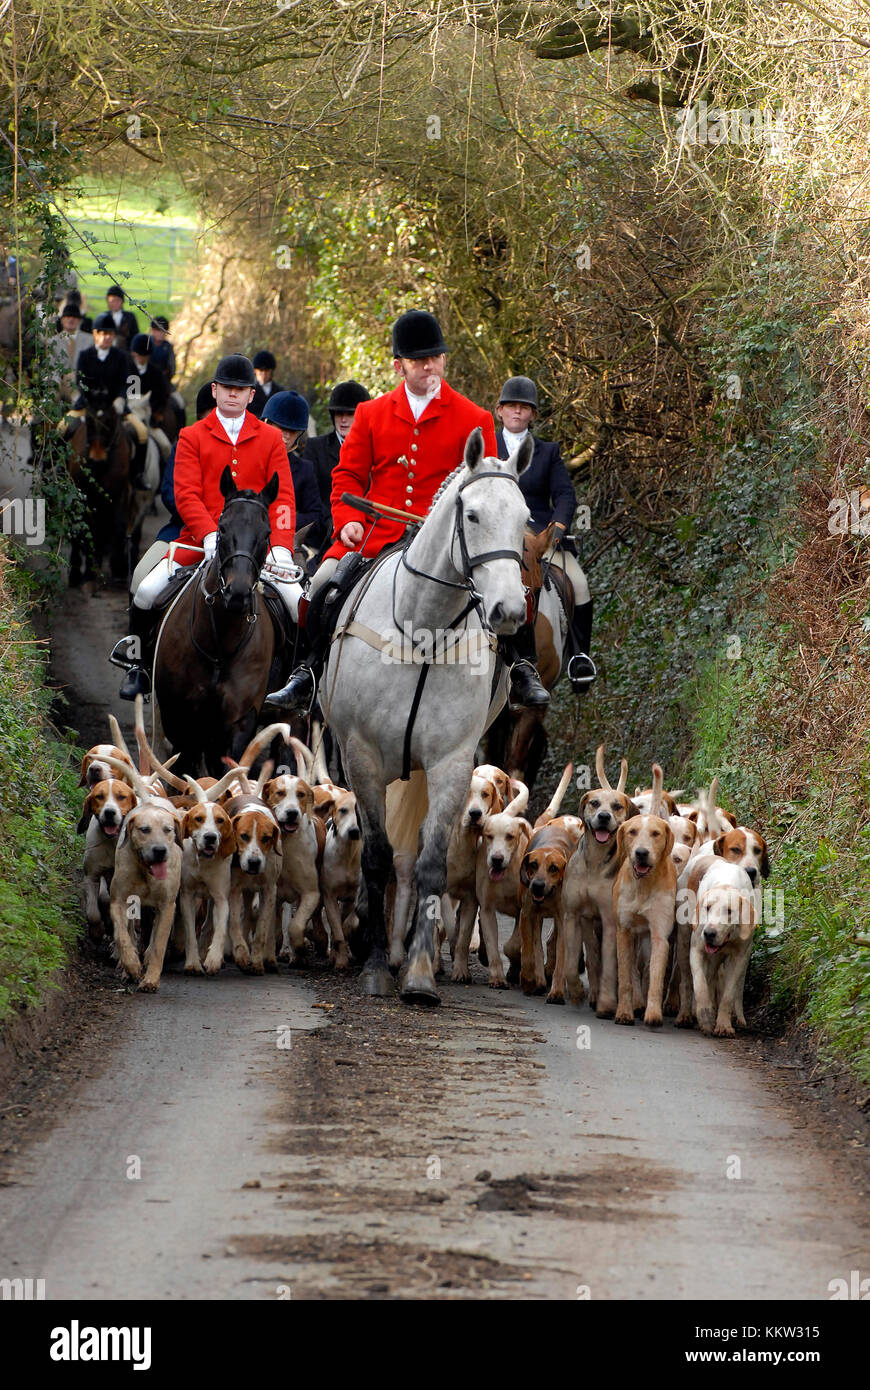 a traditional british countryside fox hunt with hounds being led by a huntsman wearing a red coat on a country lane. - Stock Image